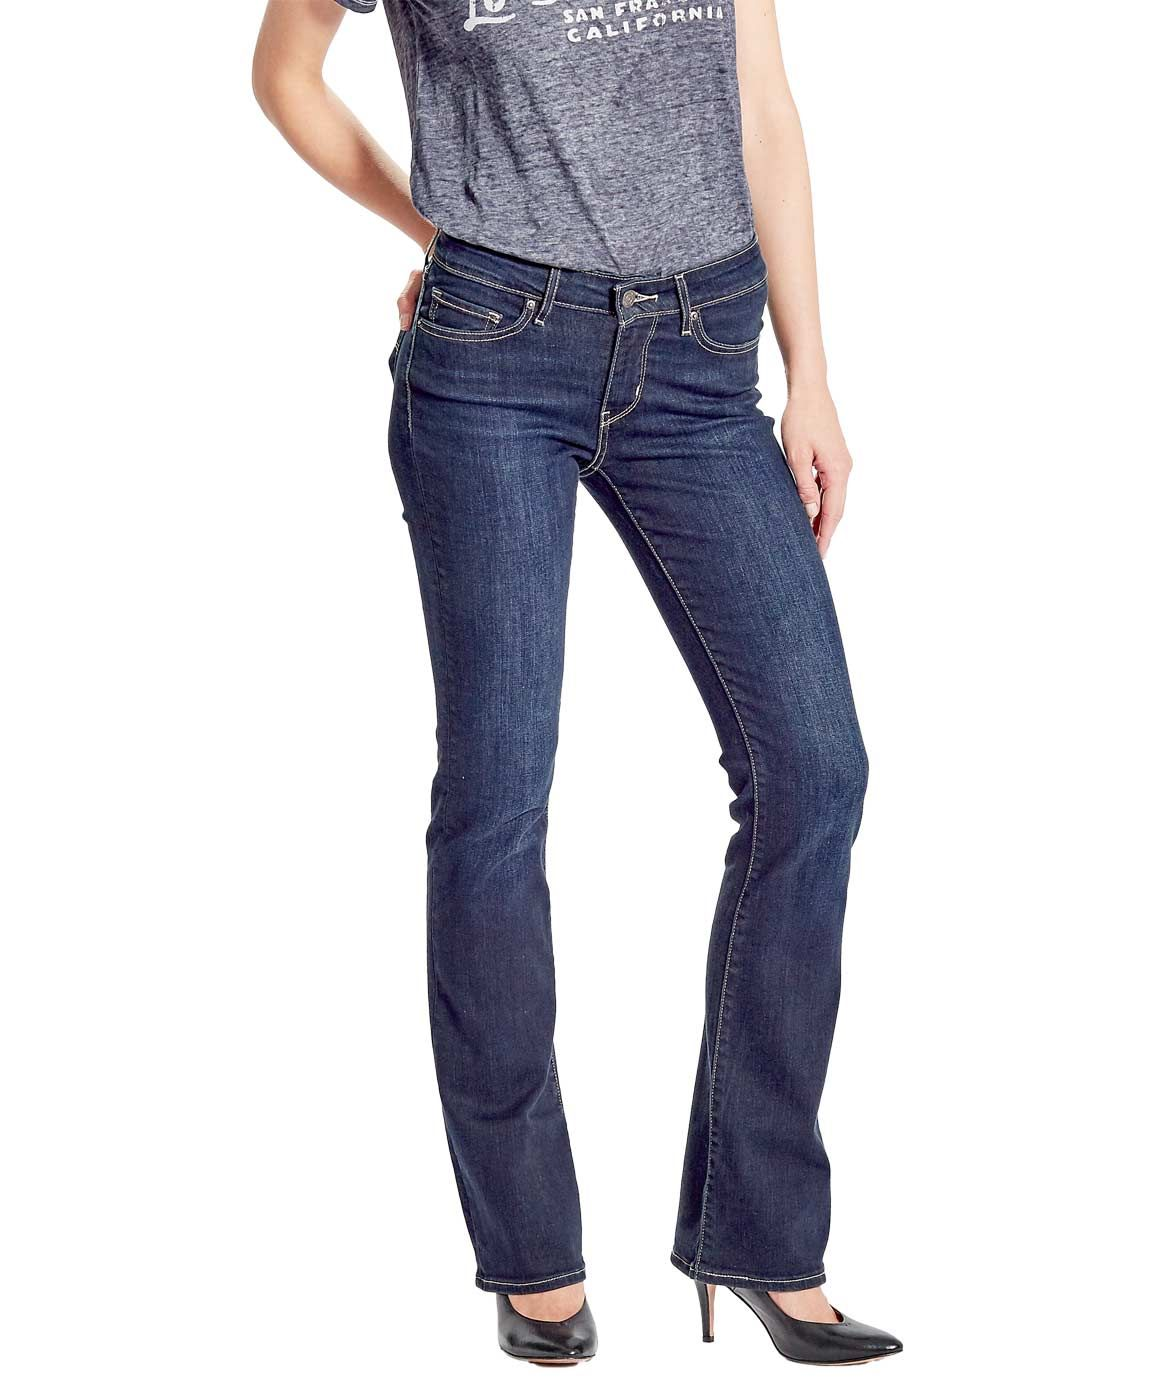 levi-s-715-bootcut-jeans-slim-fit-daytrip-7a5